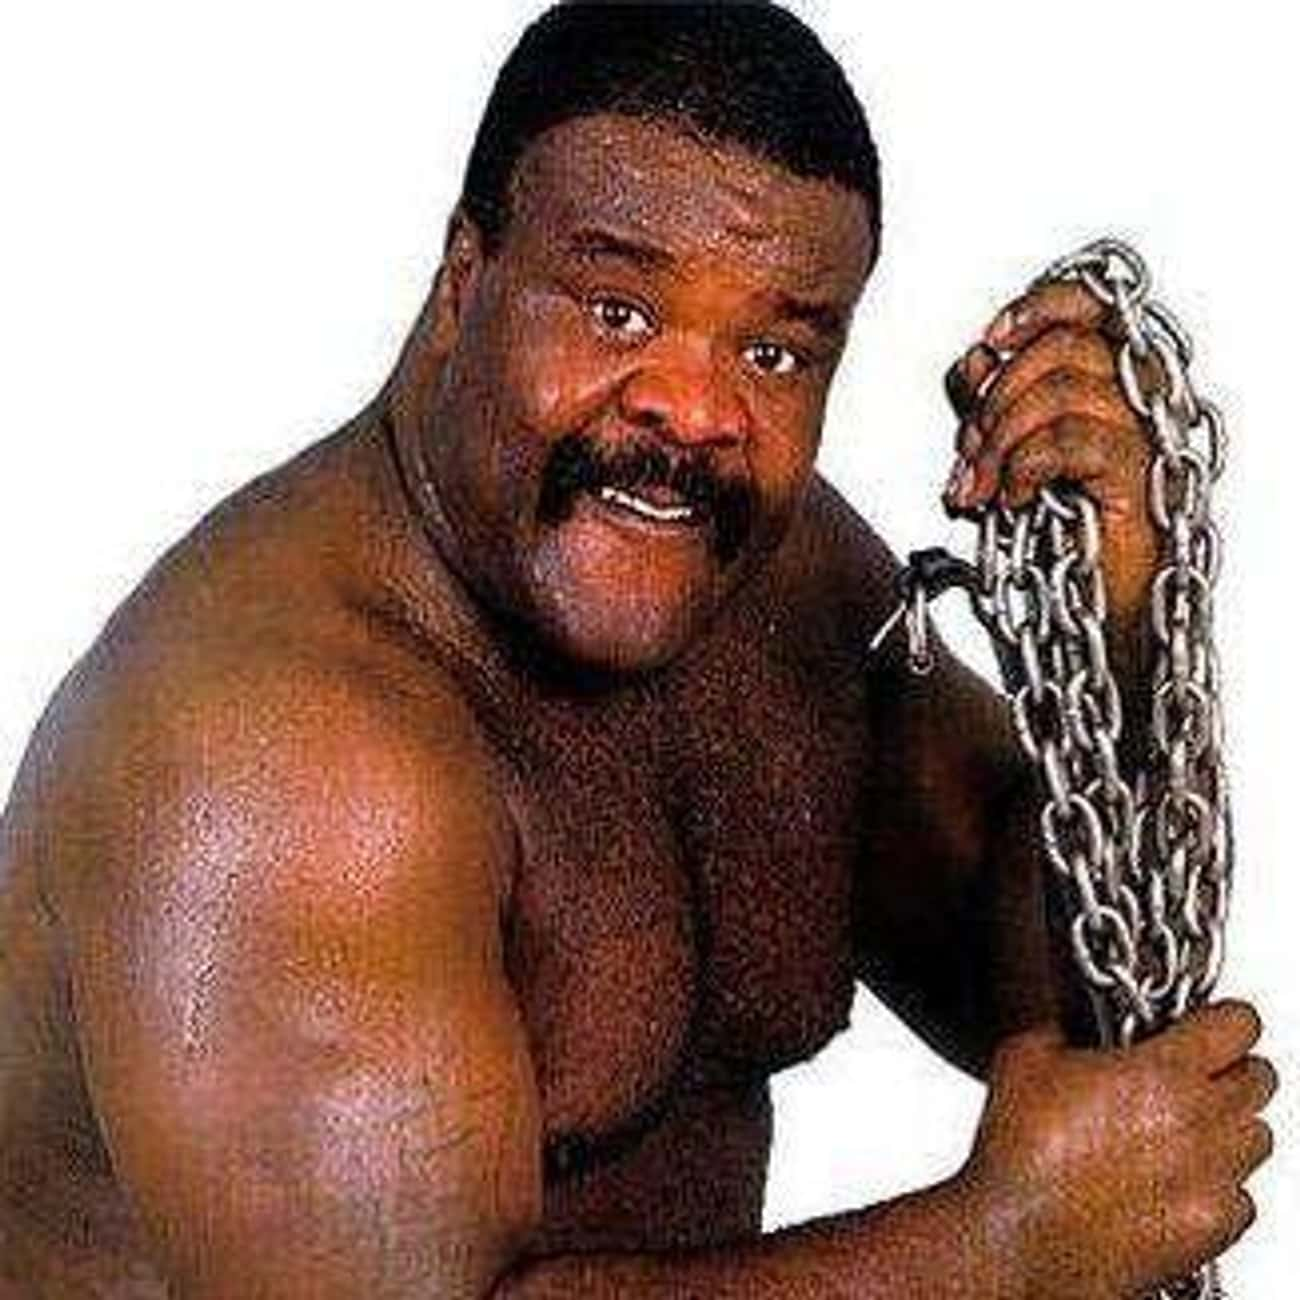 Junkyard Dog is listed (or ranked) 1 on the list The Best (and Worst) Animal Based Gimmicks in Wrestling History